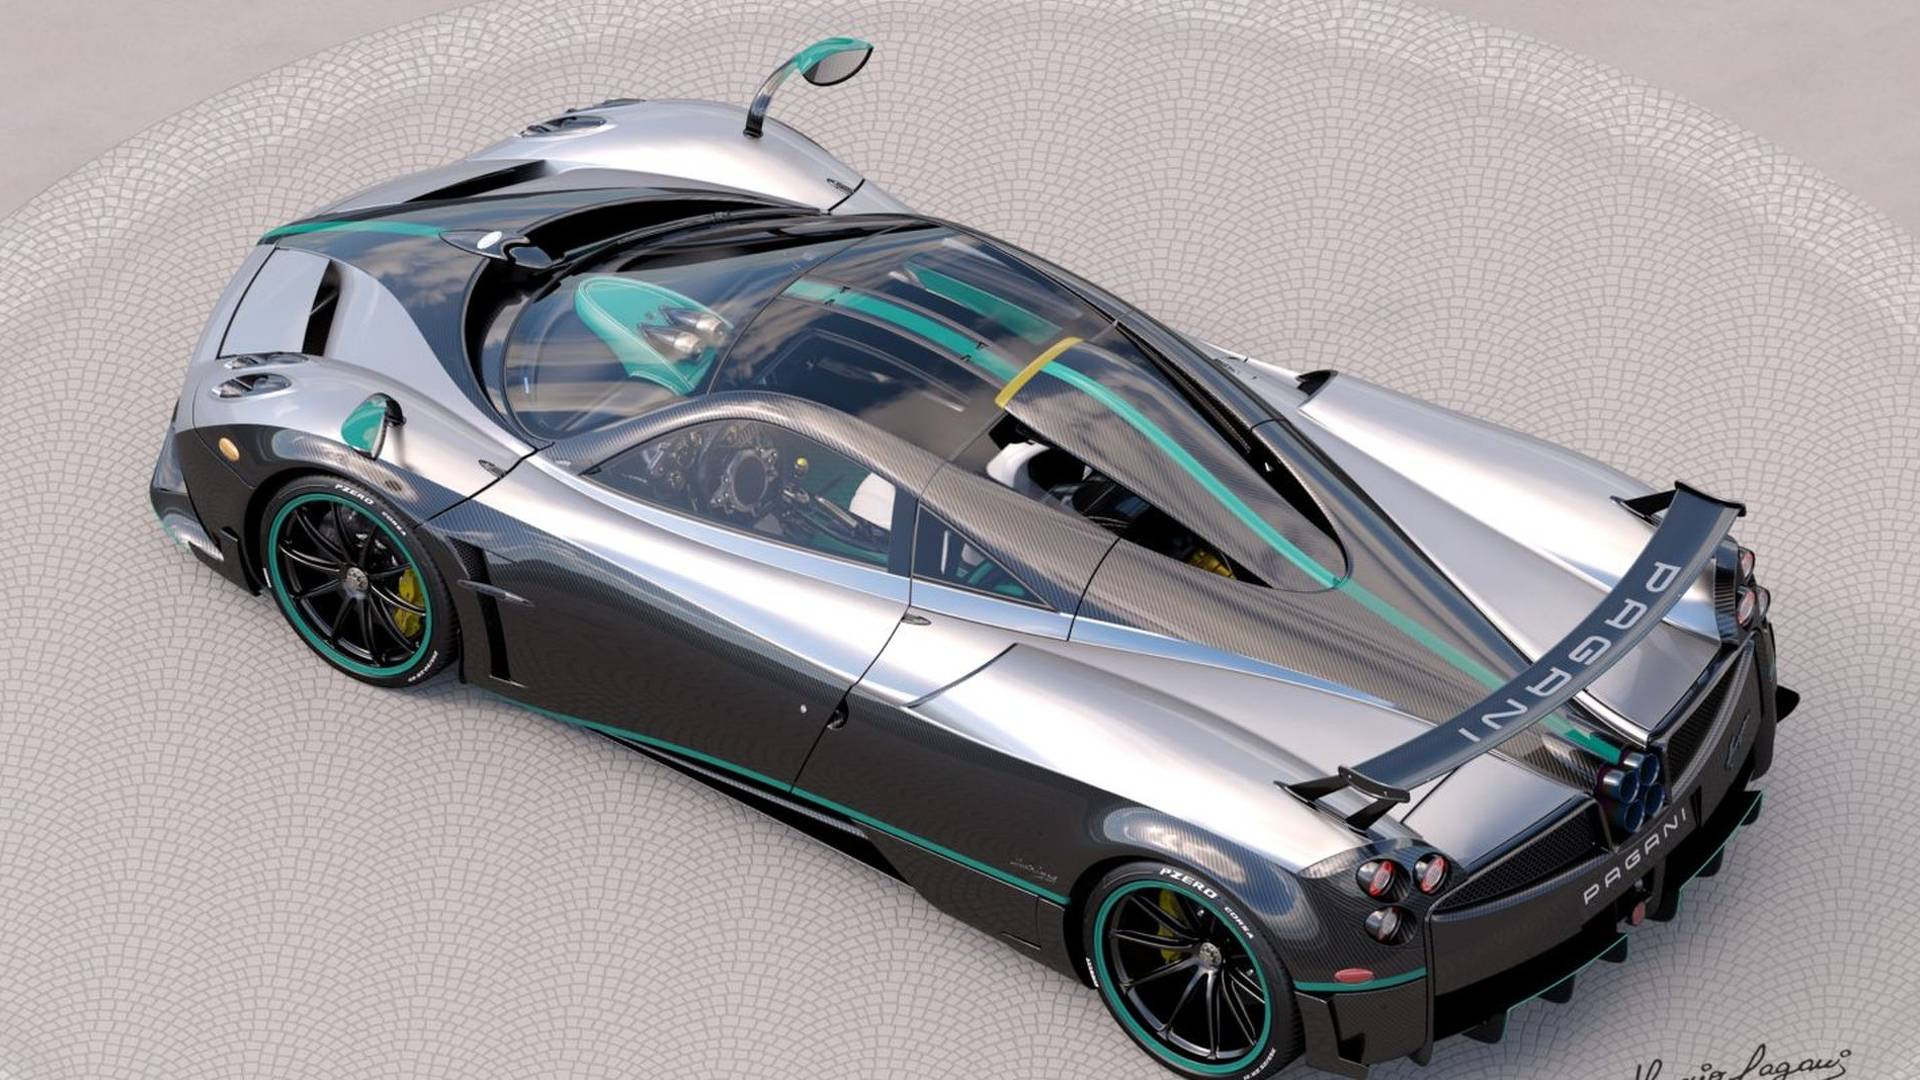 Photo of Στα χρώματα της Mercedes F1 η τελευταία Pagani Huayra Coupe